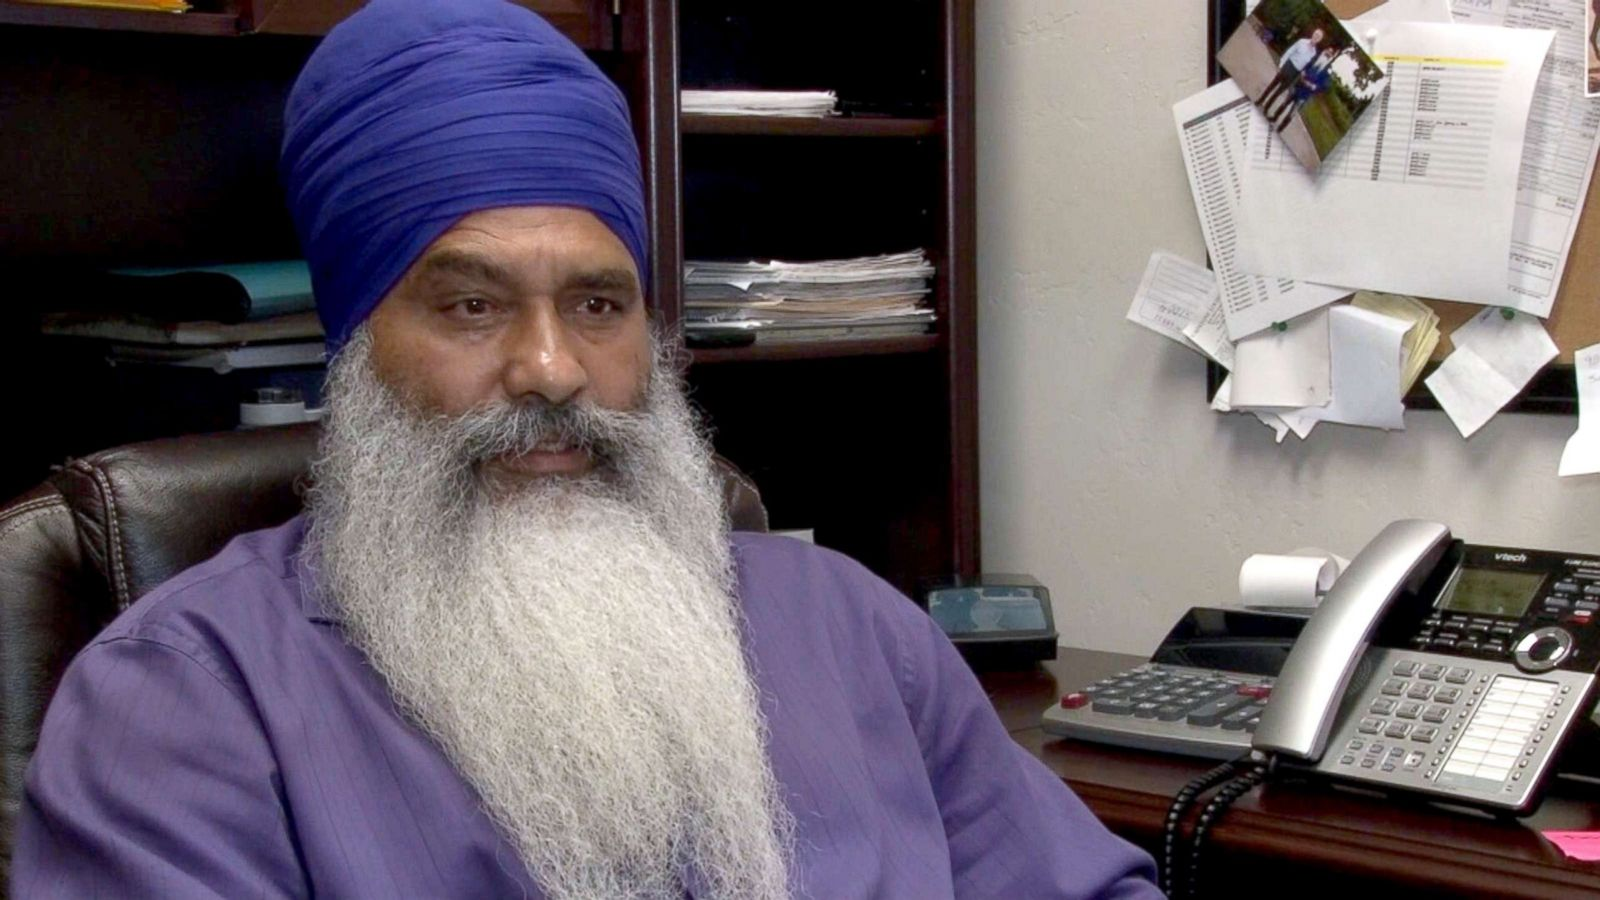 sikh man attacked while putting up campaign signs, told to 'go back